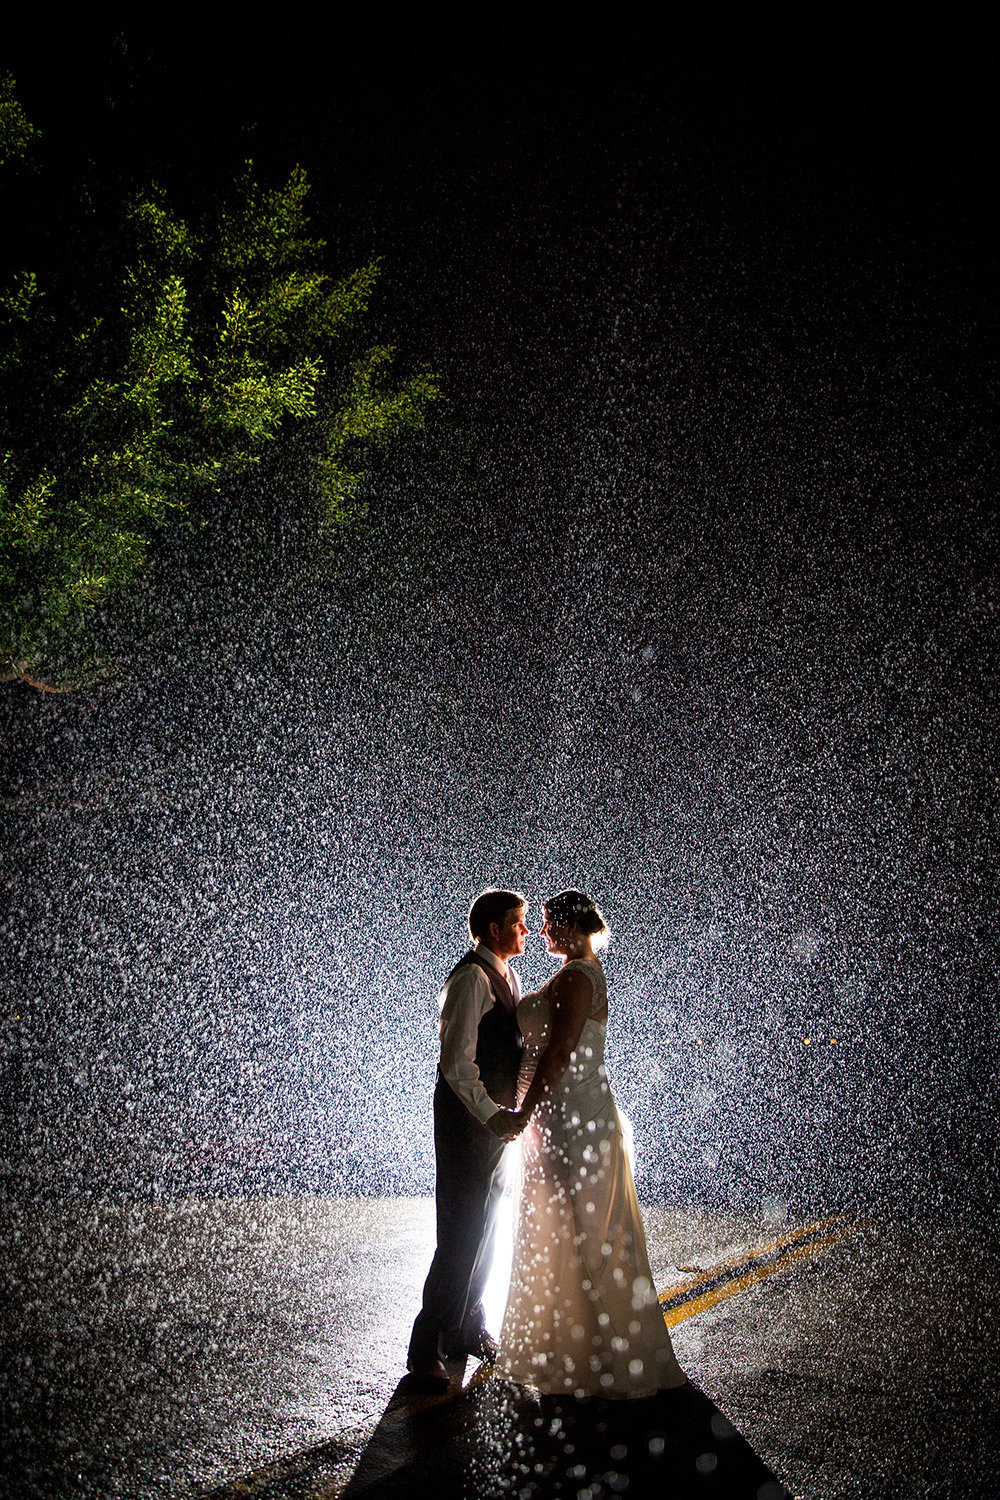 amazing night shot with rain